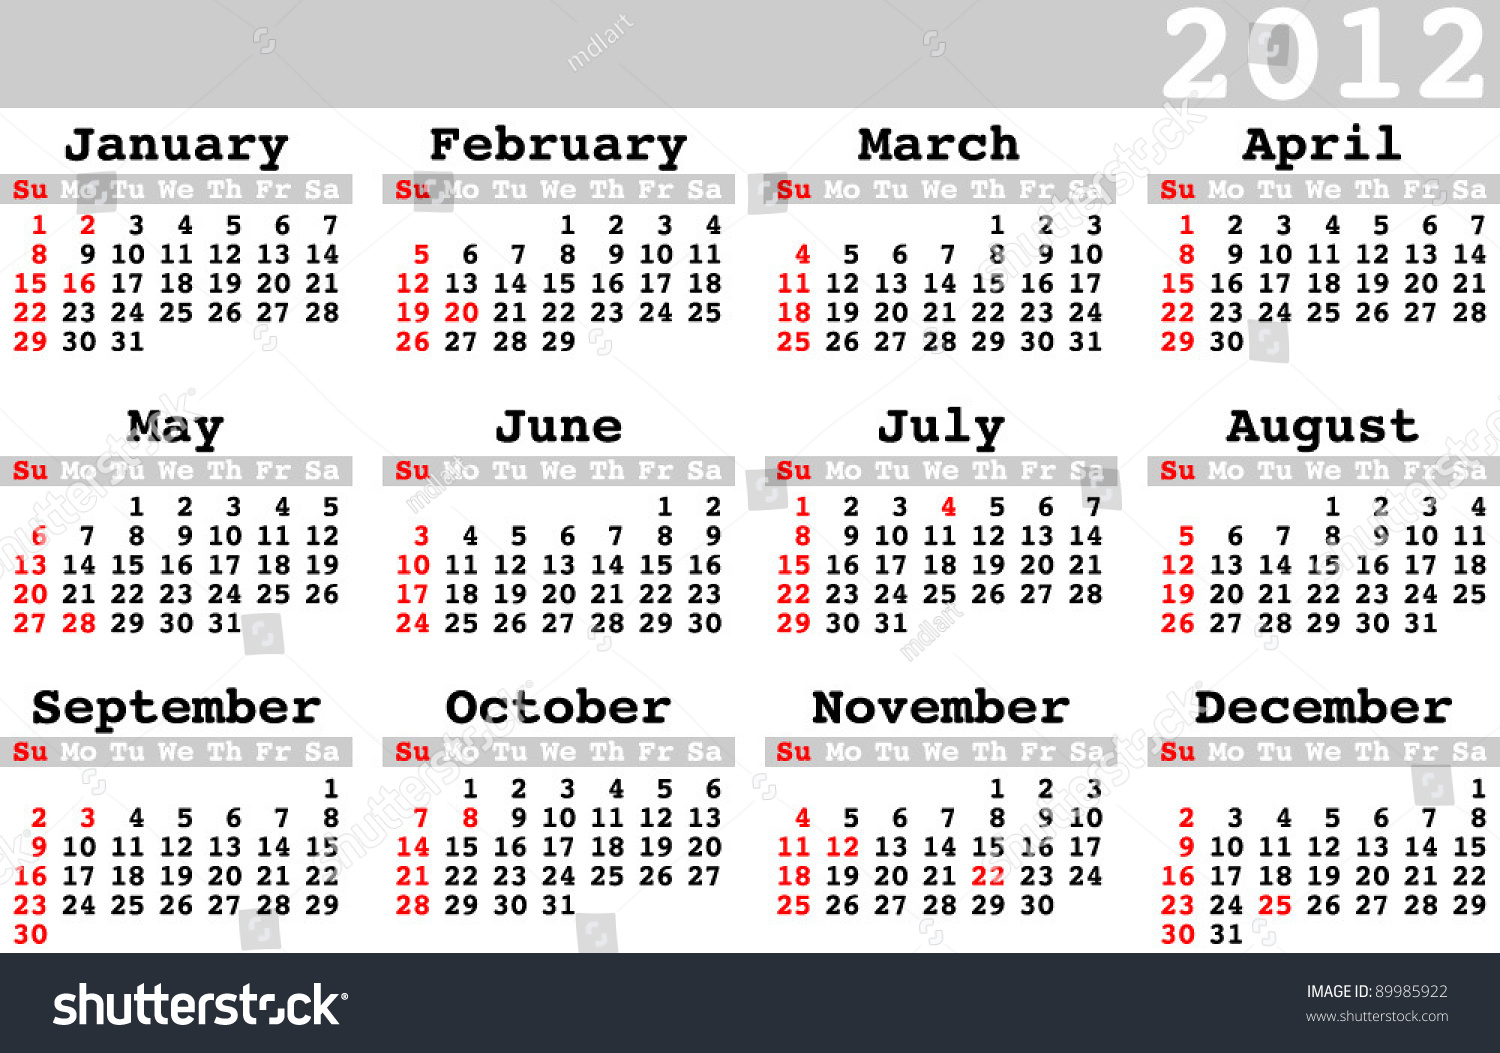 Calendar 2012 With Holidays